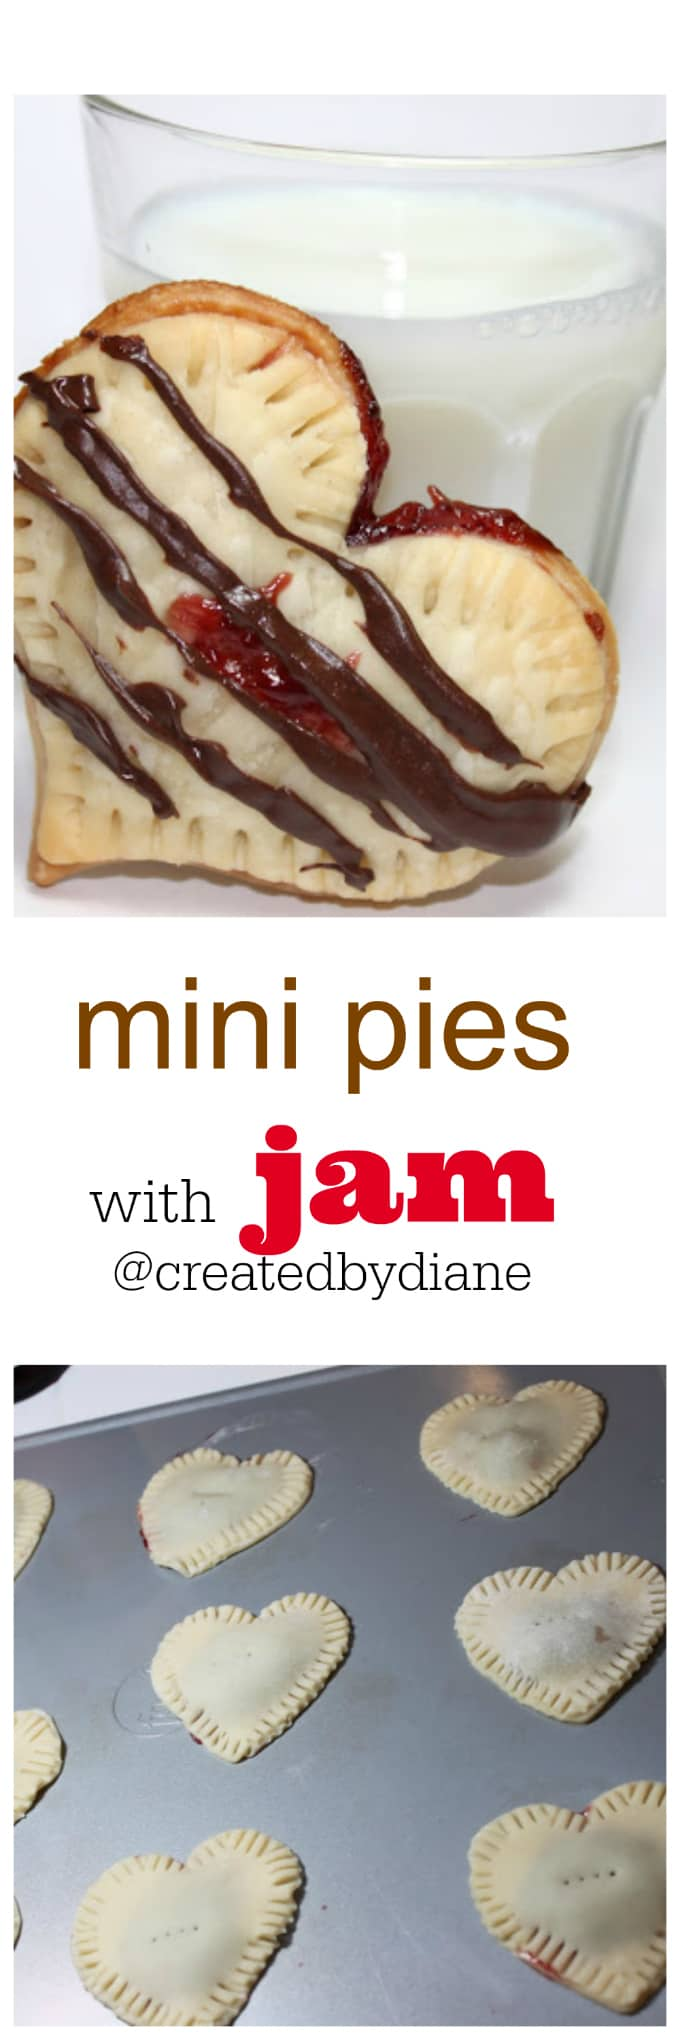 mini pies with jam @createdbydiane